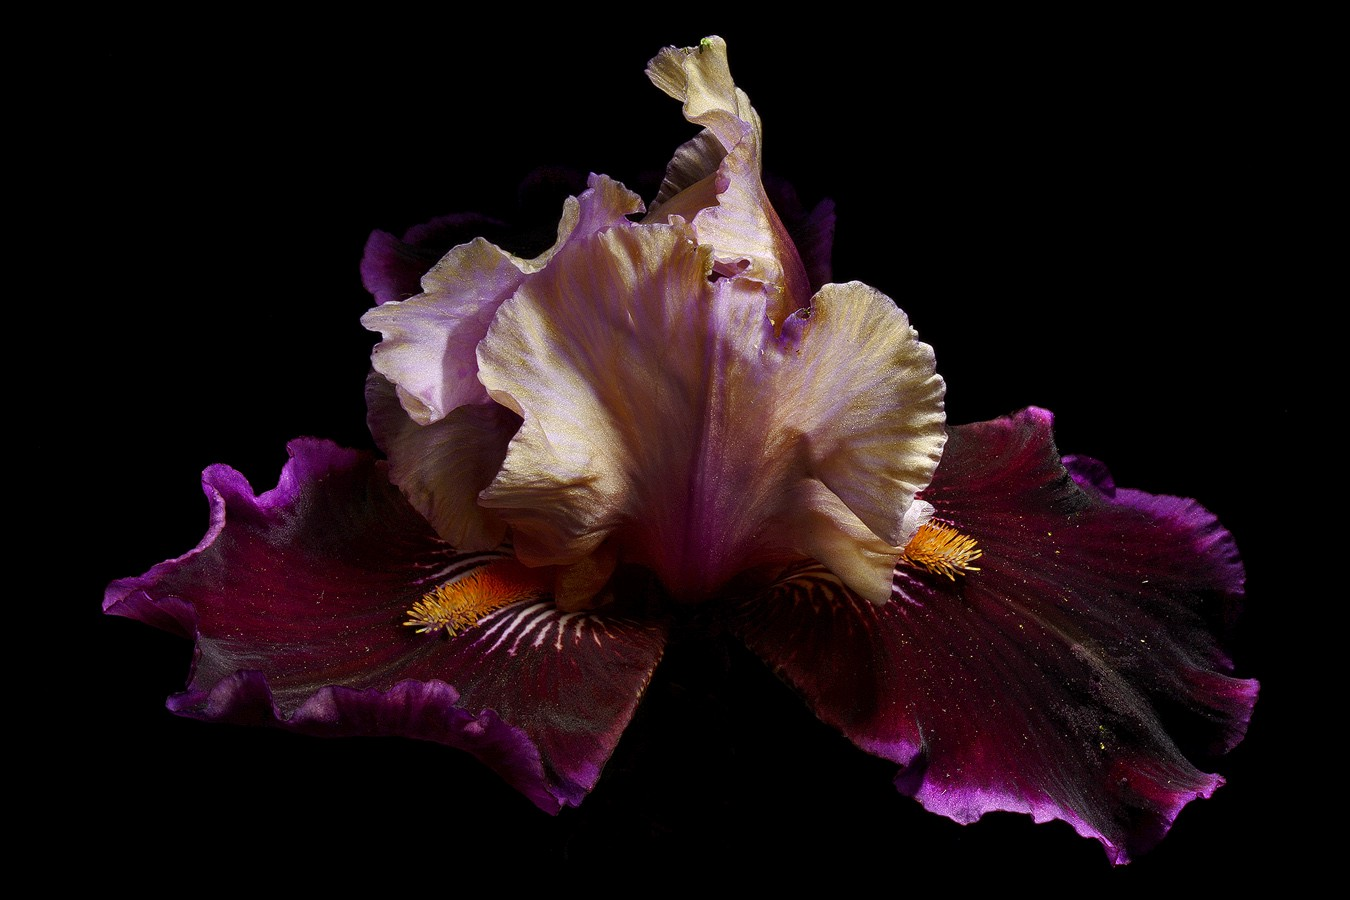 iris summer revisited img aw author sava gregory and verena